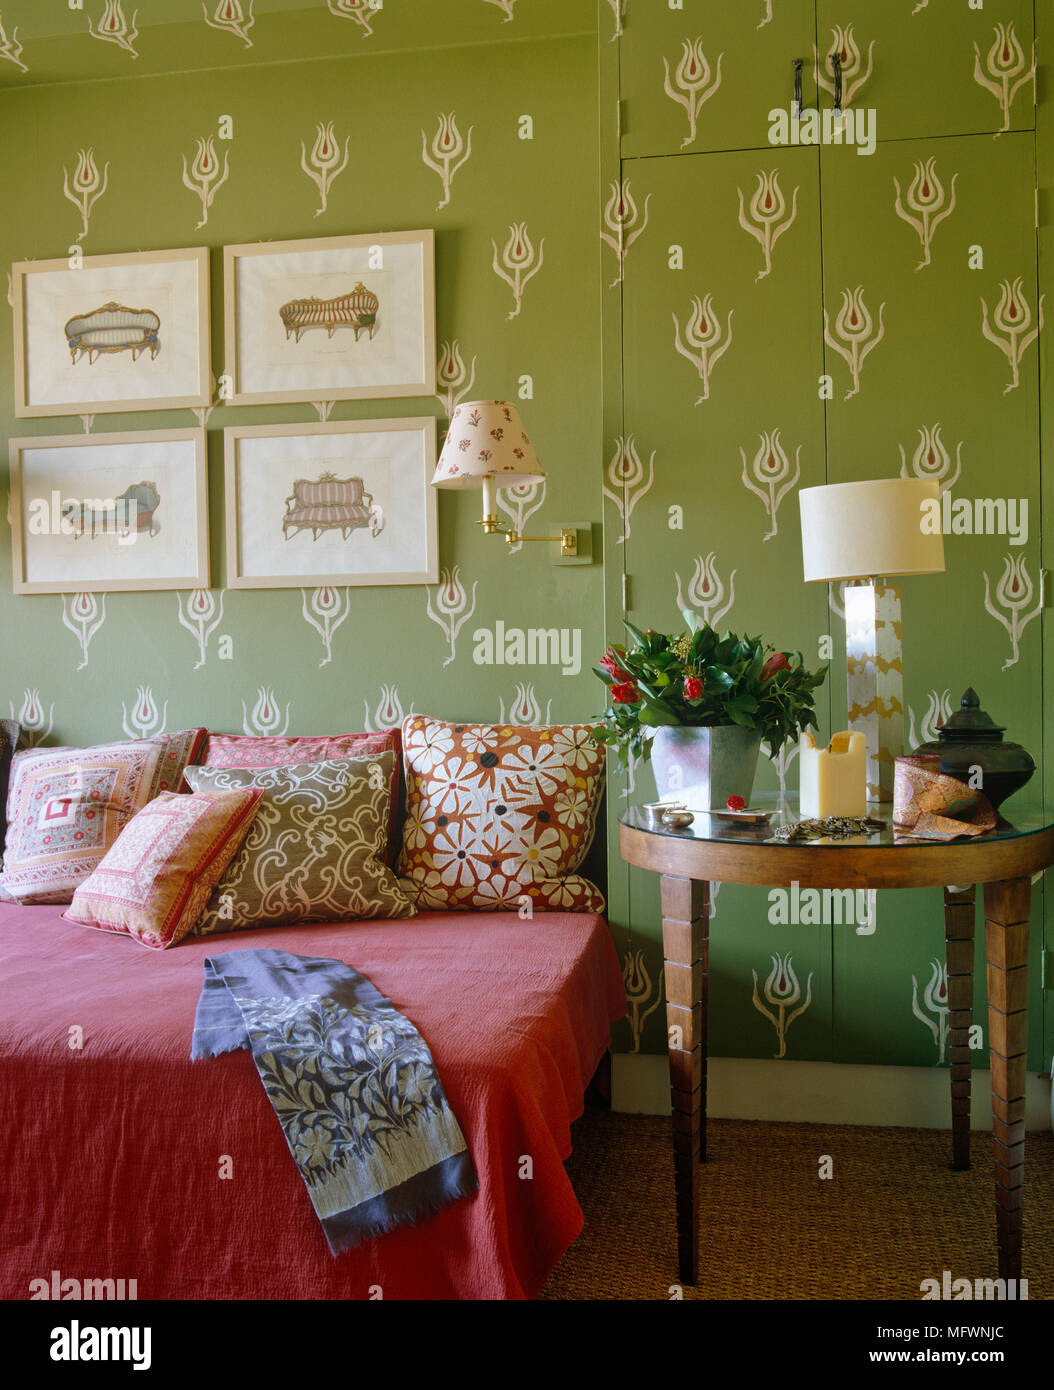 lamp on wooden table next to double bed with red cover and cushions rh alamy com